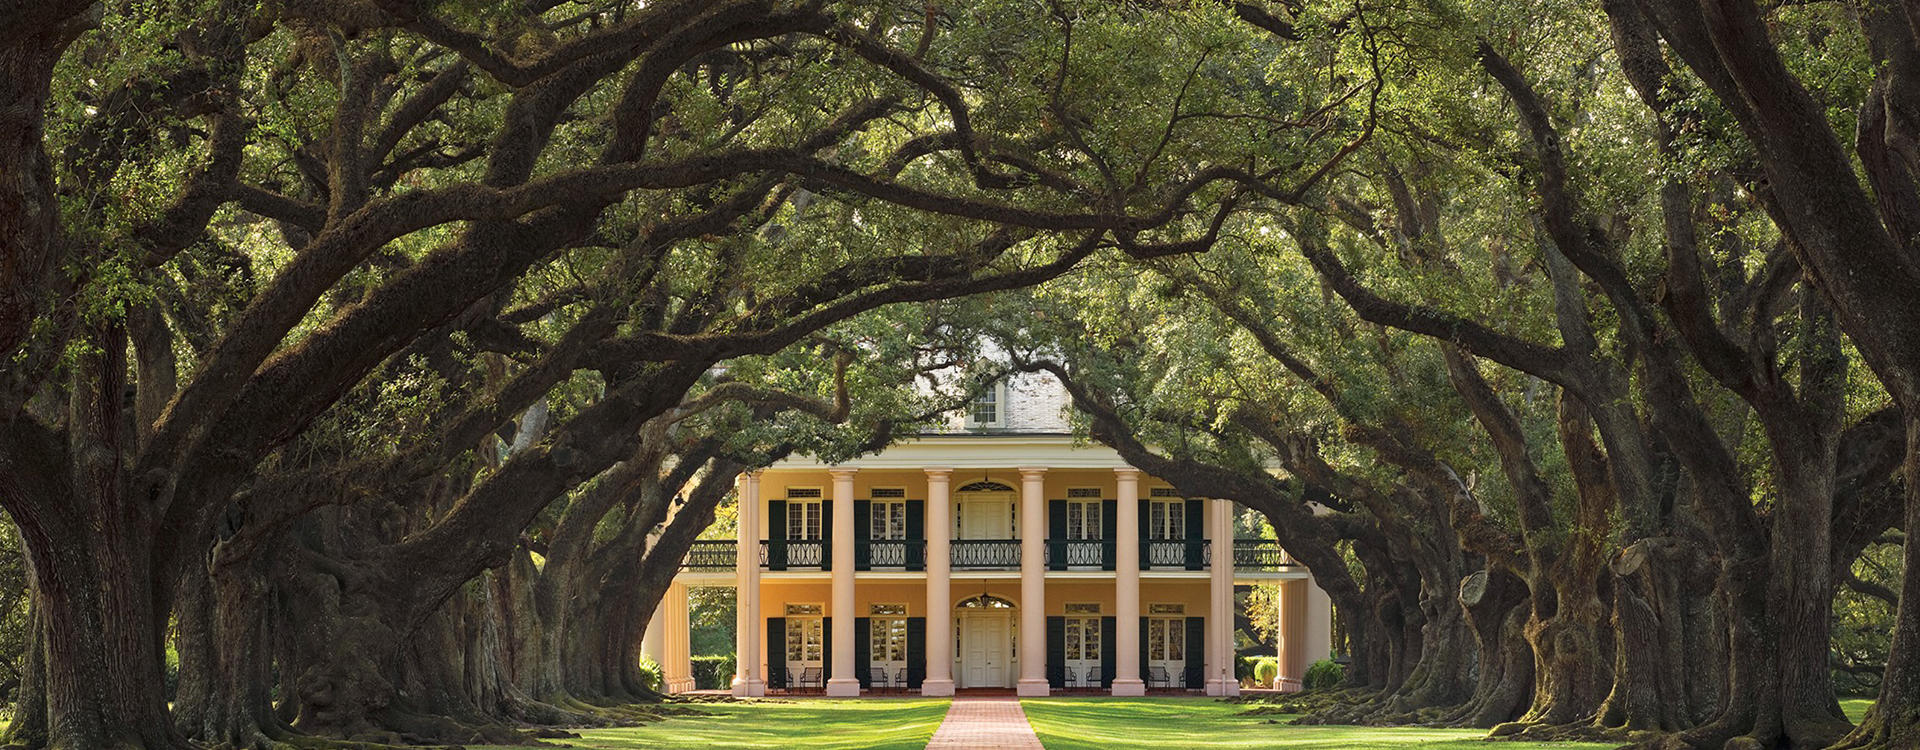 OM-Royal-Orleans_Oak-Alley-Plantation-Tour